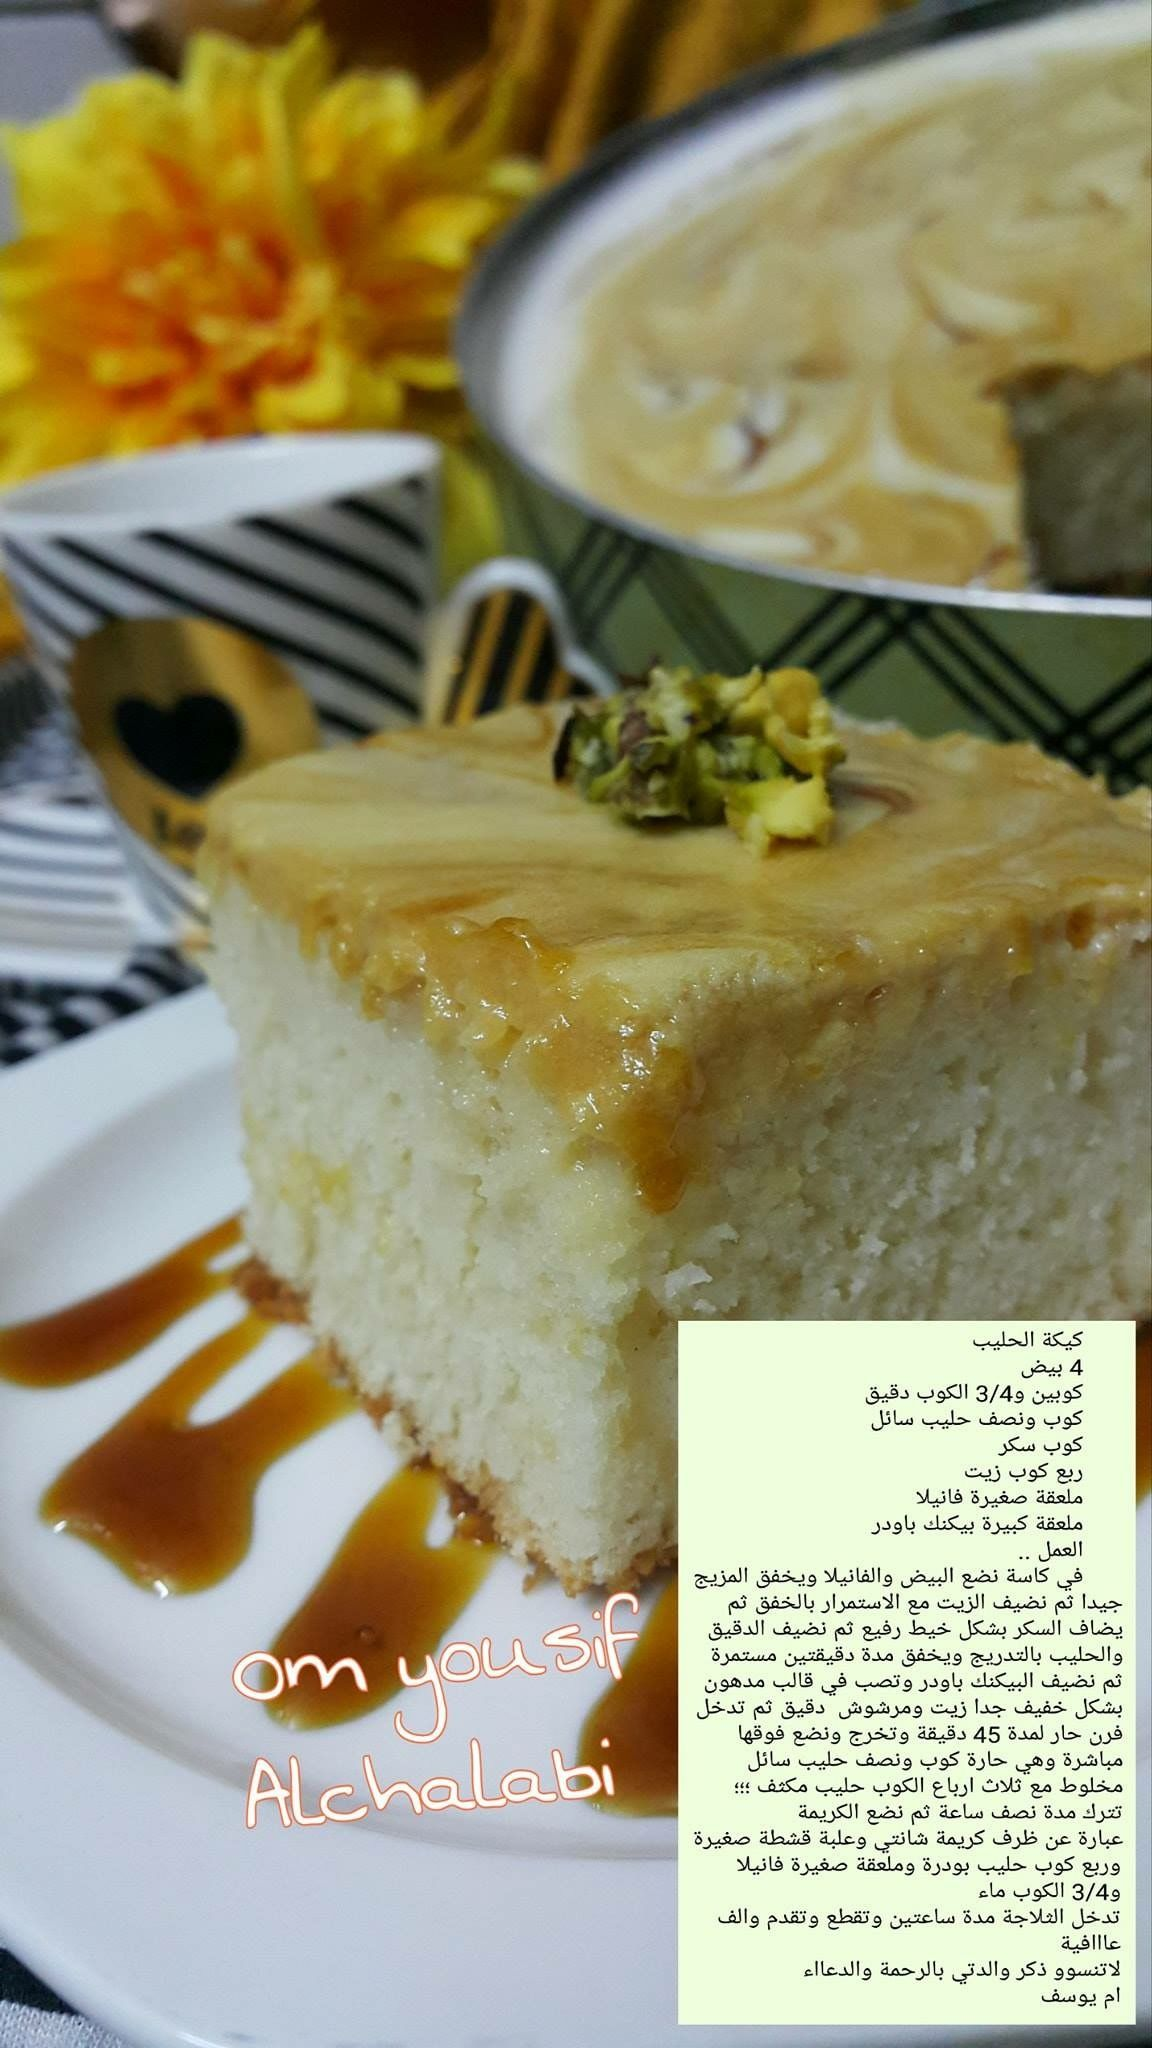 Pin By Hanadi On Um Yousif Foods From Baghdad Morrocan Food Cooking Recipes Desserts Food Videos Desserts